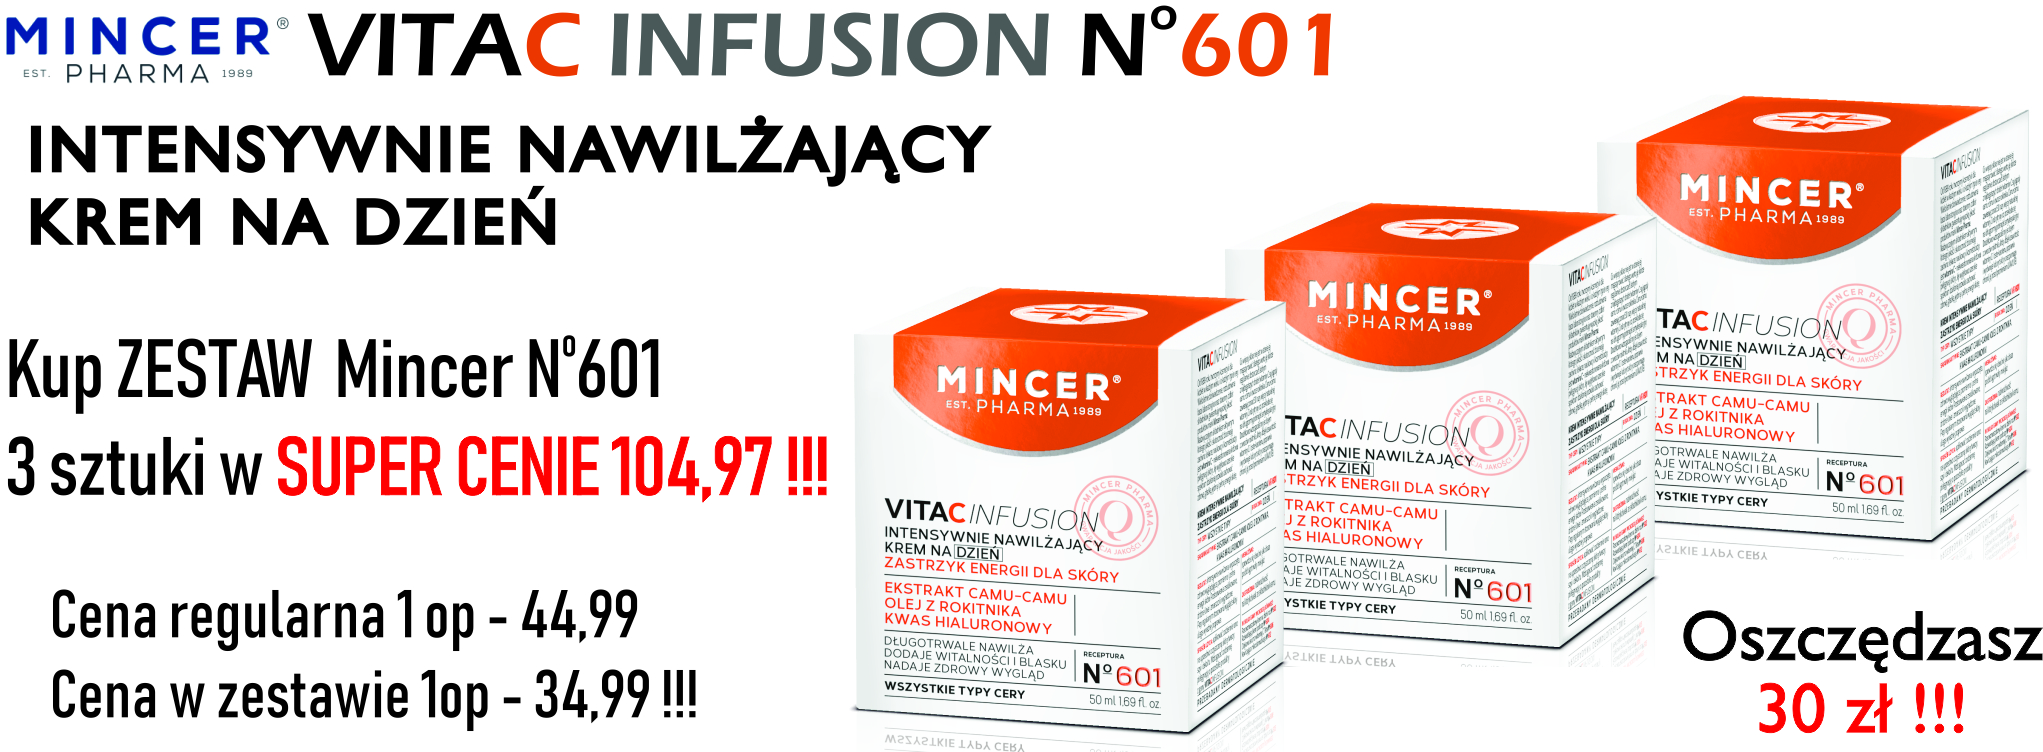 Mincer VitaC Infusion 601 Zestaw 3*50ml